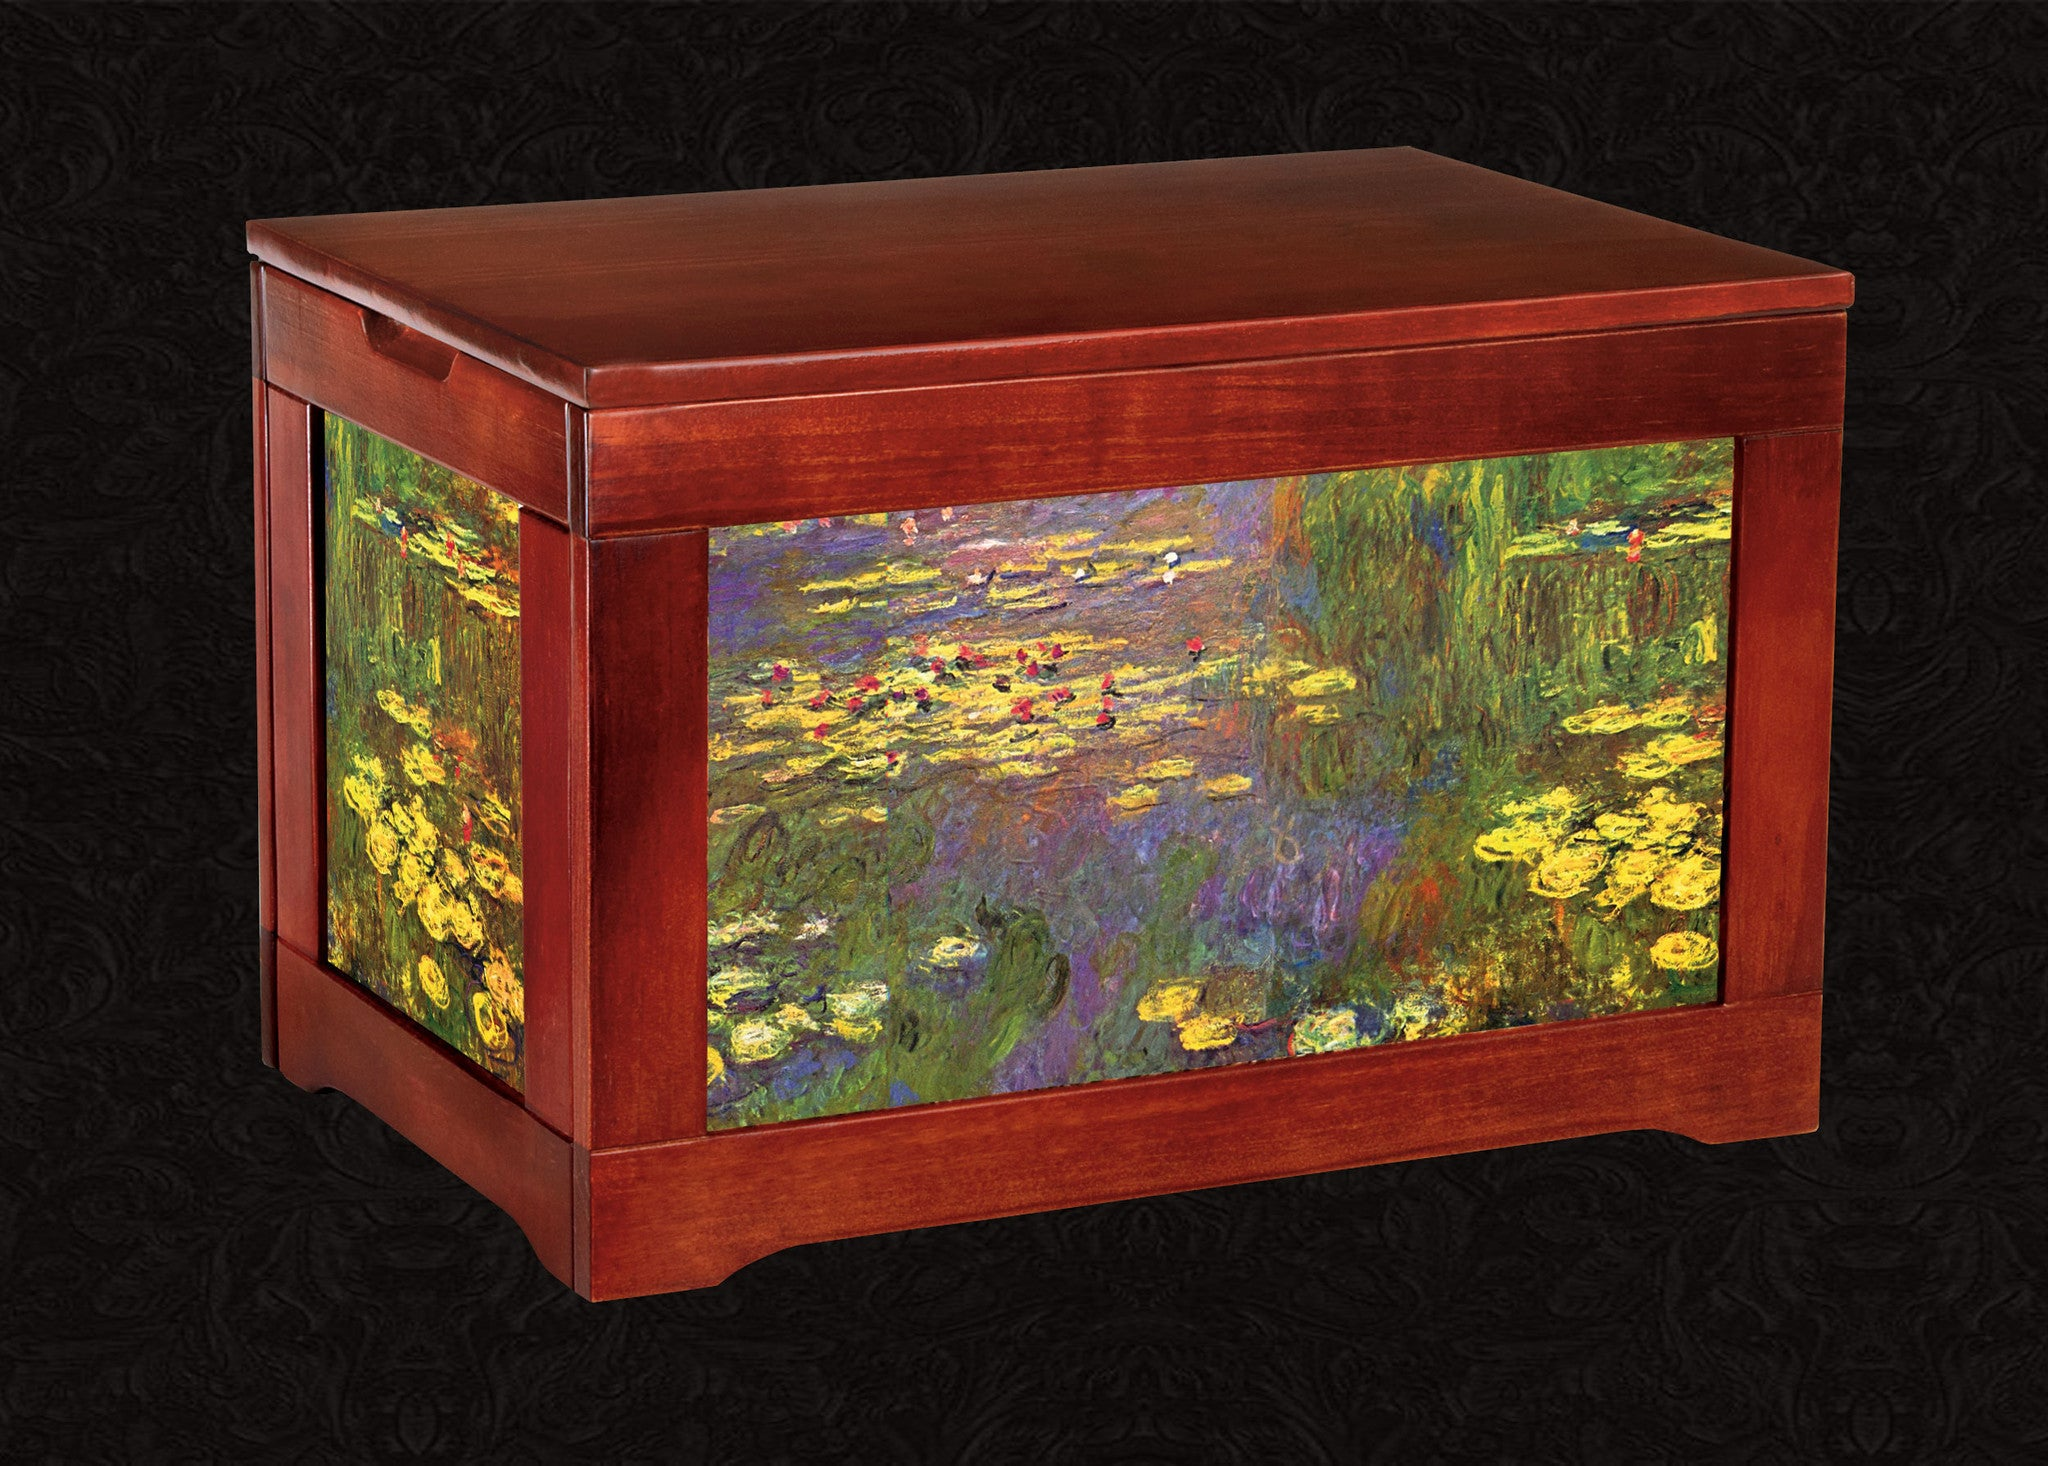 Sun Room Box-Lilies Nymphea-Monet